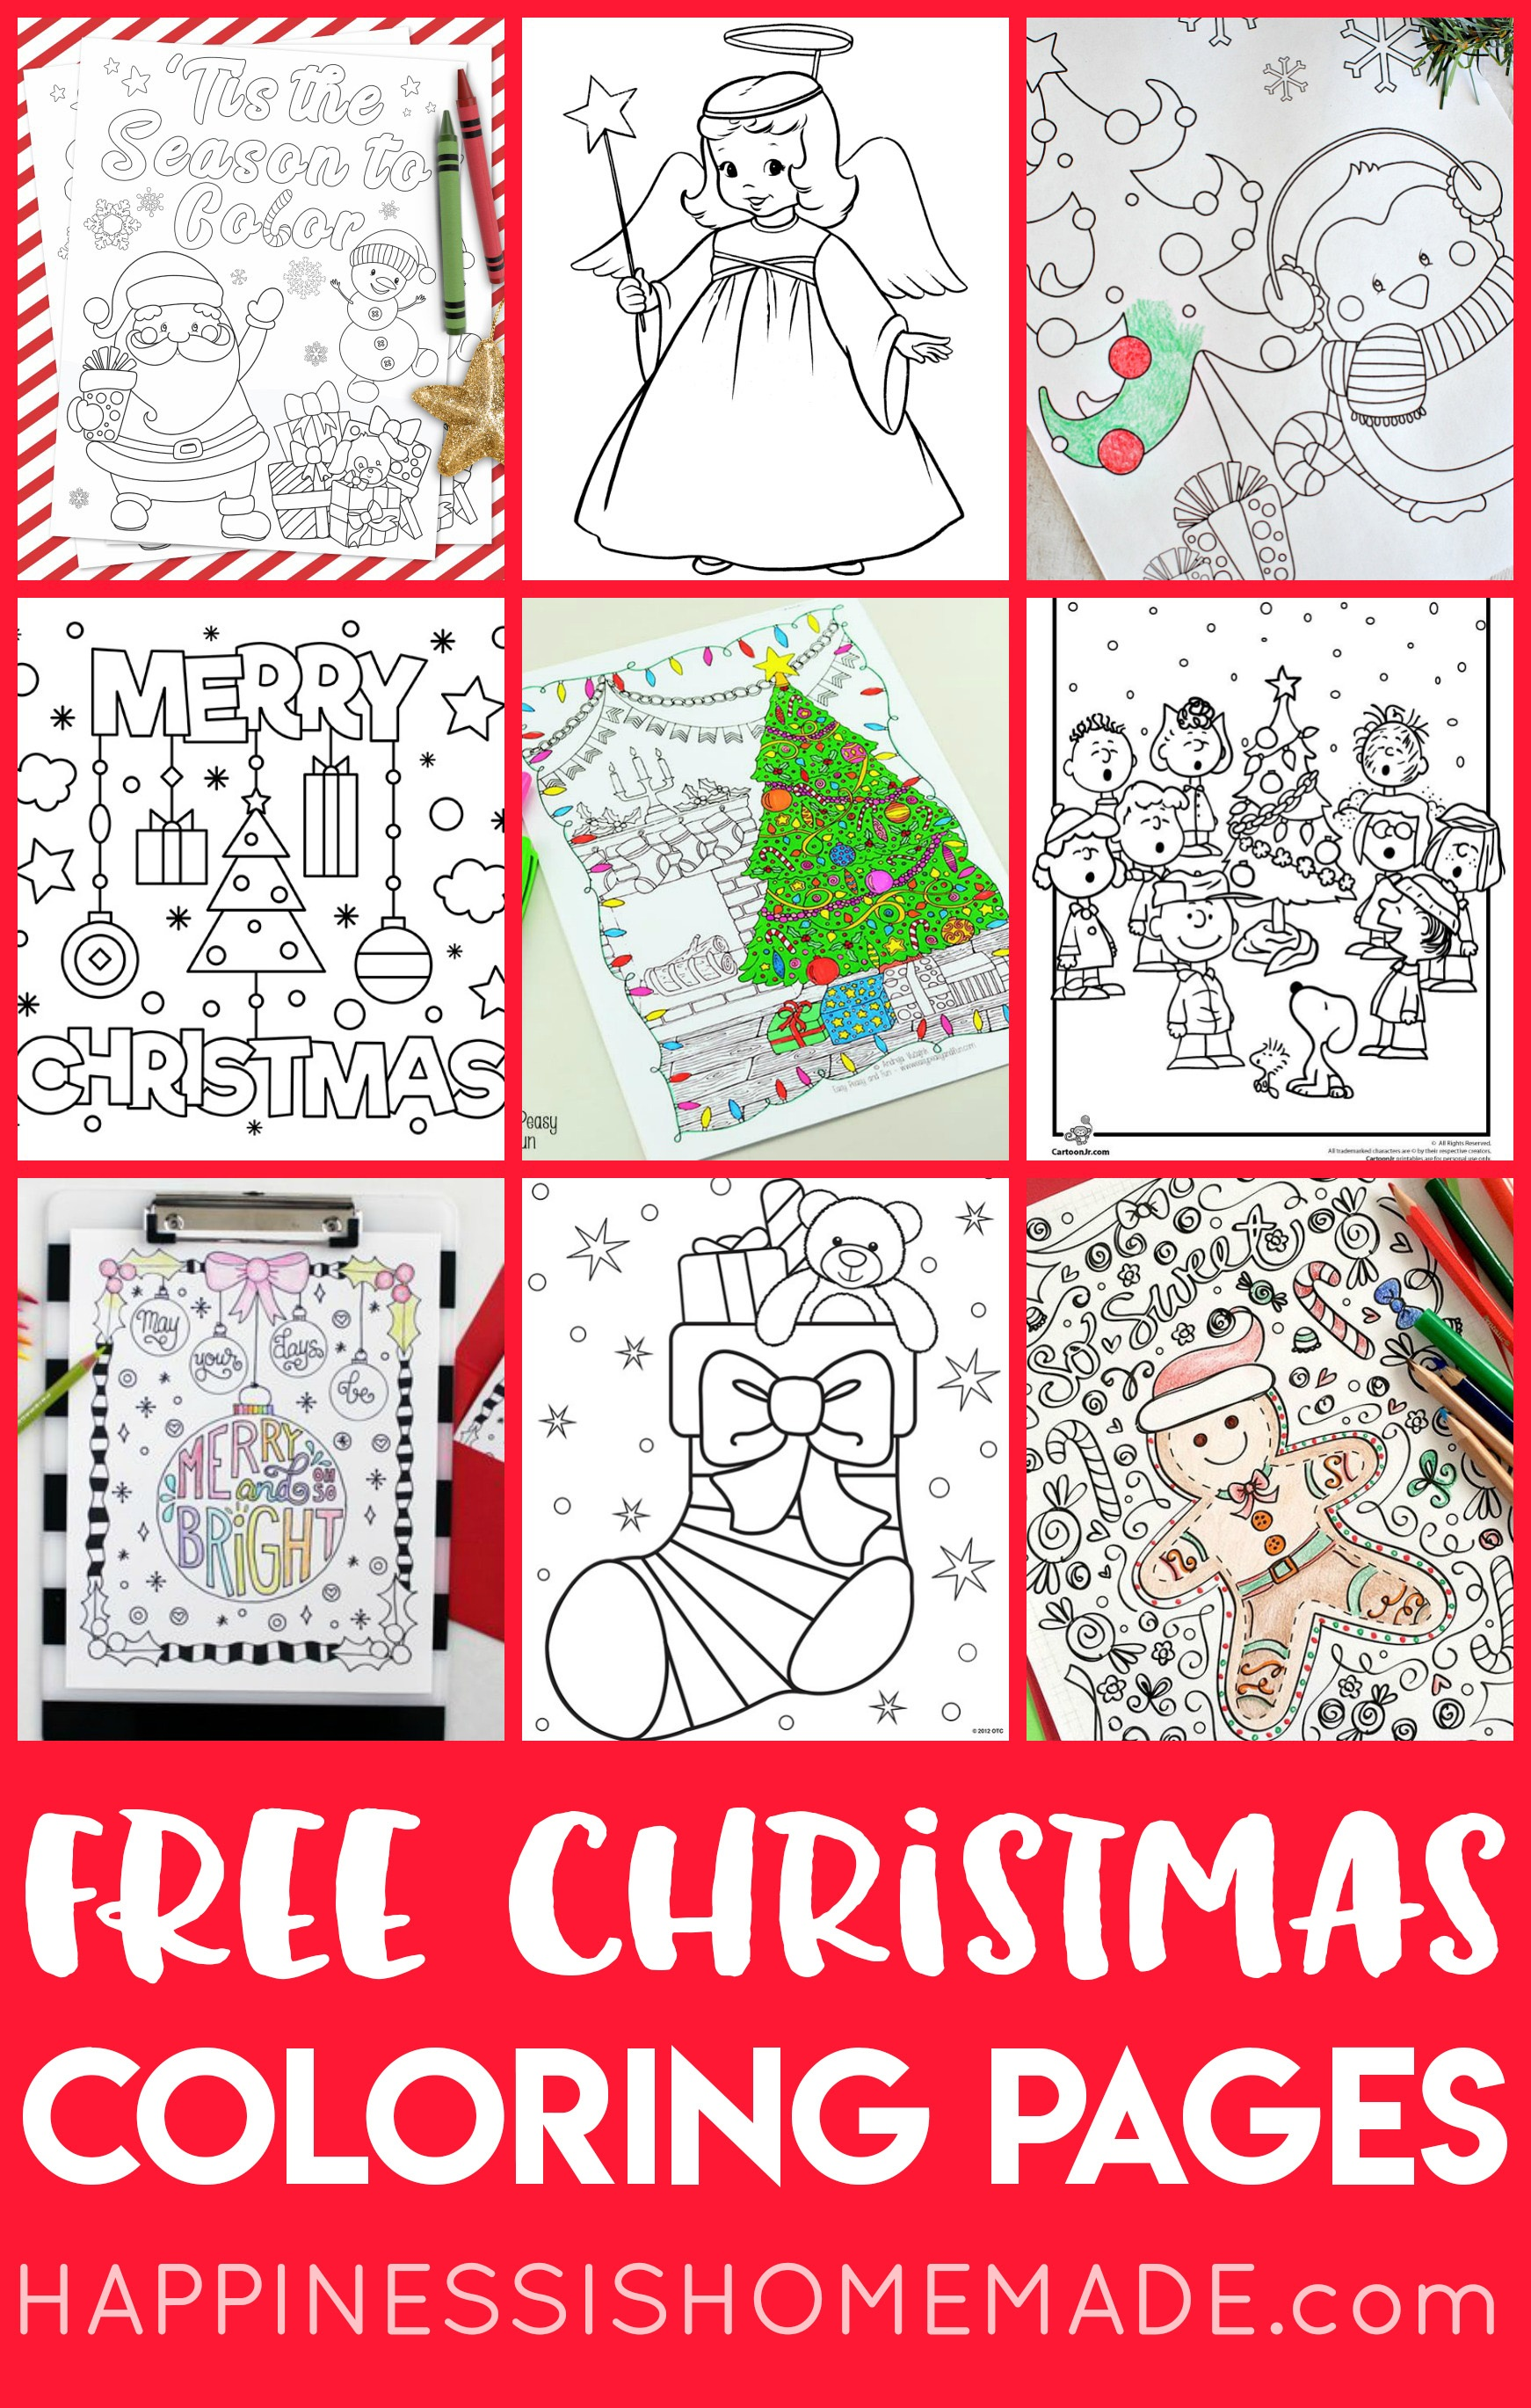 Merry Christmas Socks Coloring Pages For Kids Printable